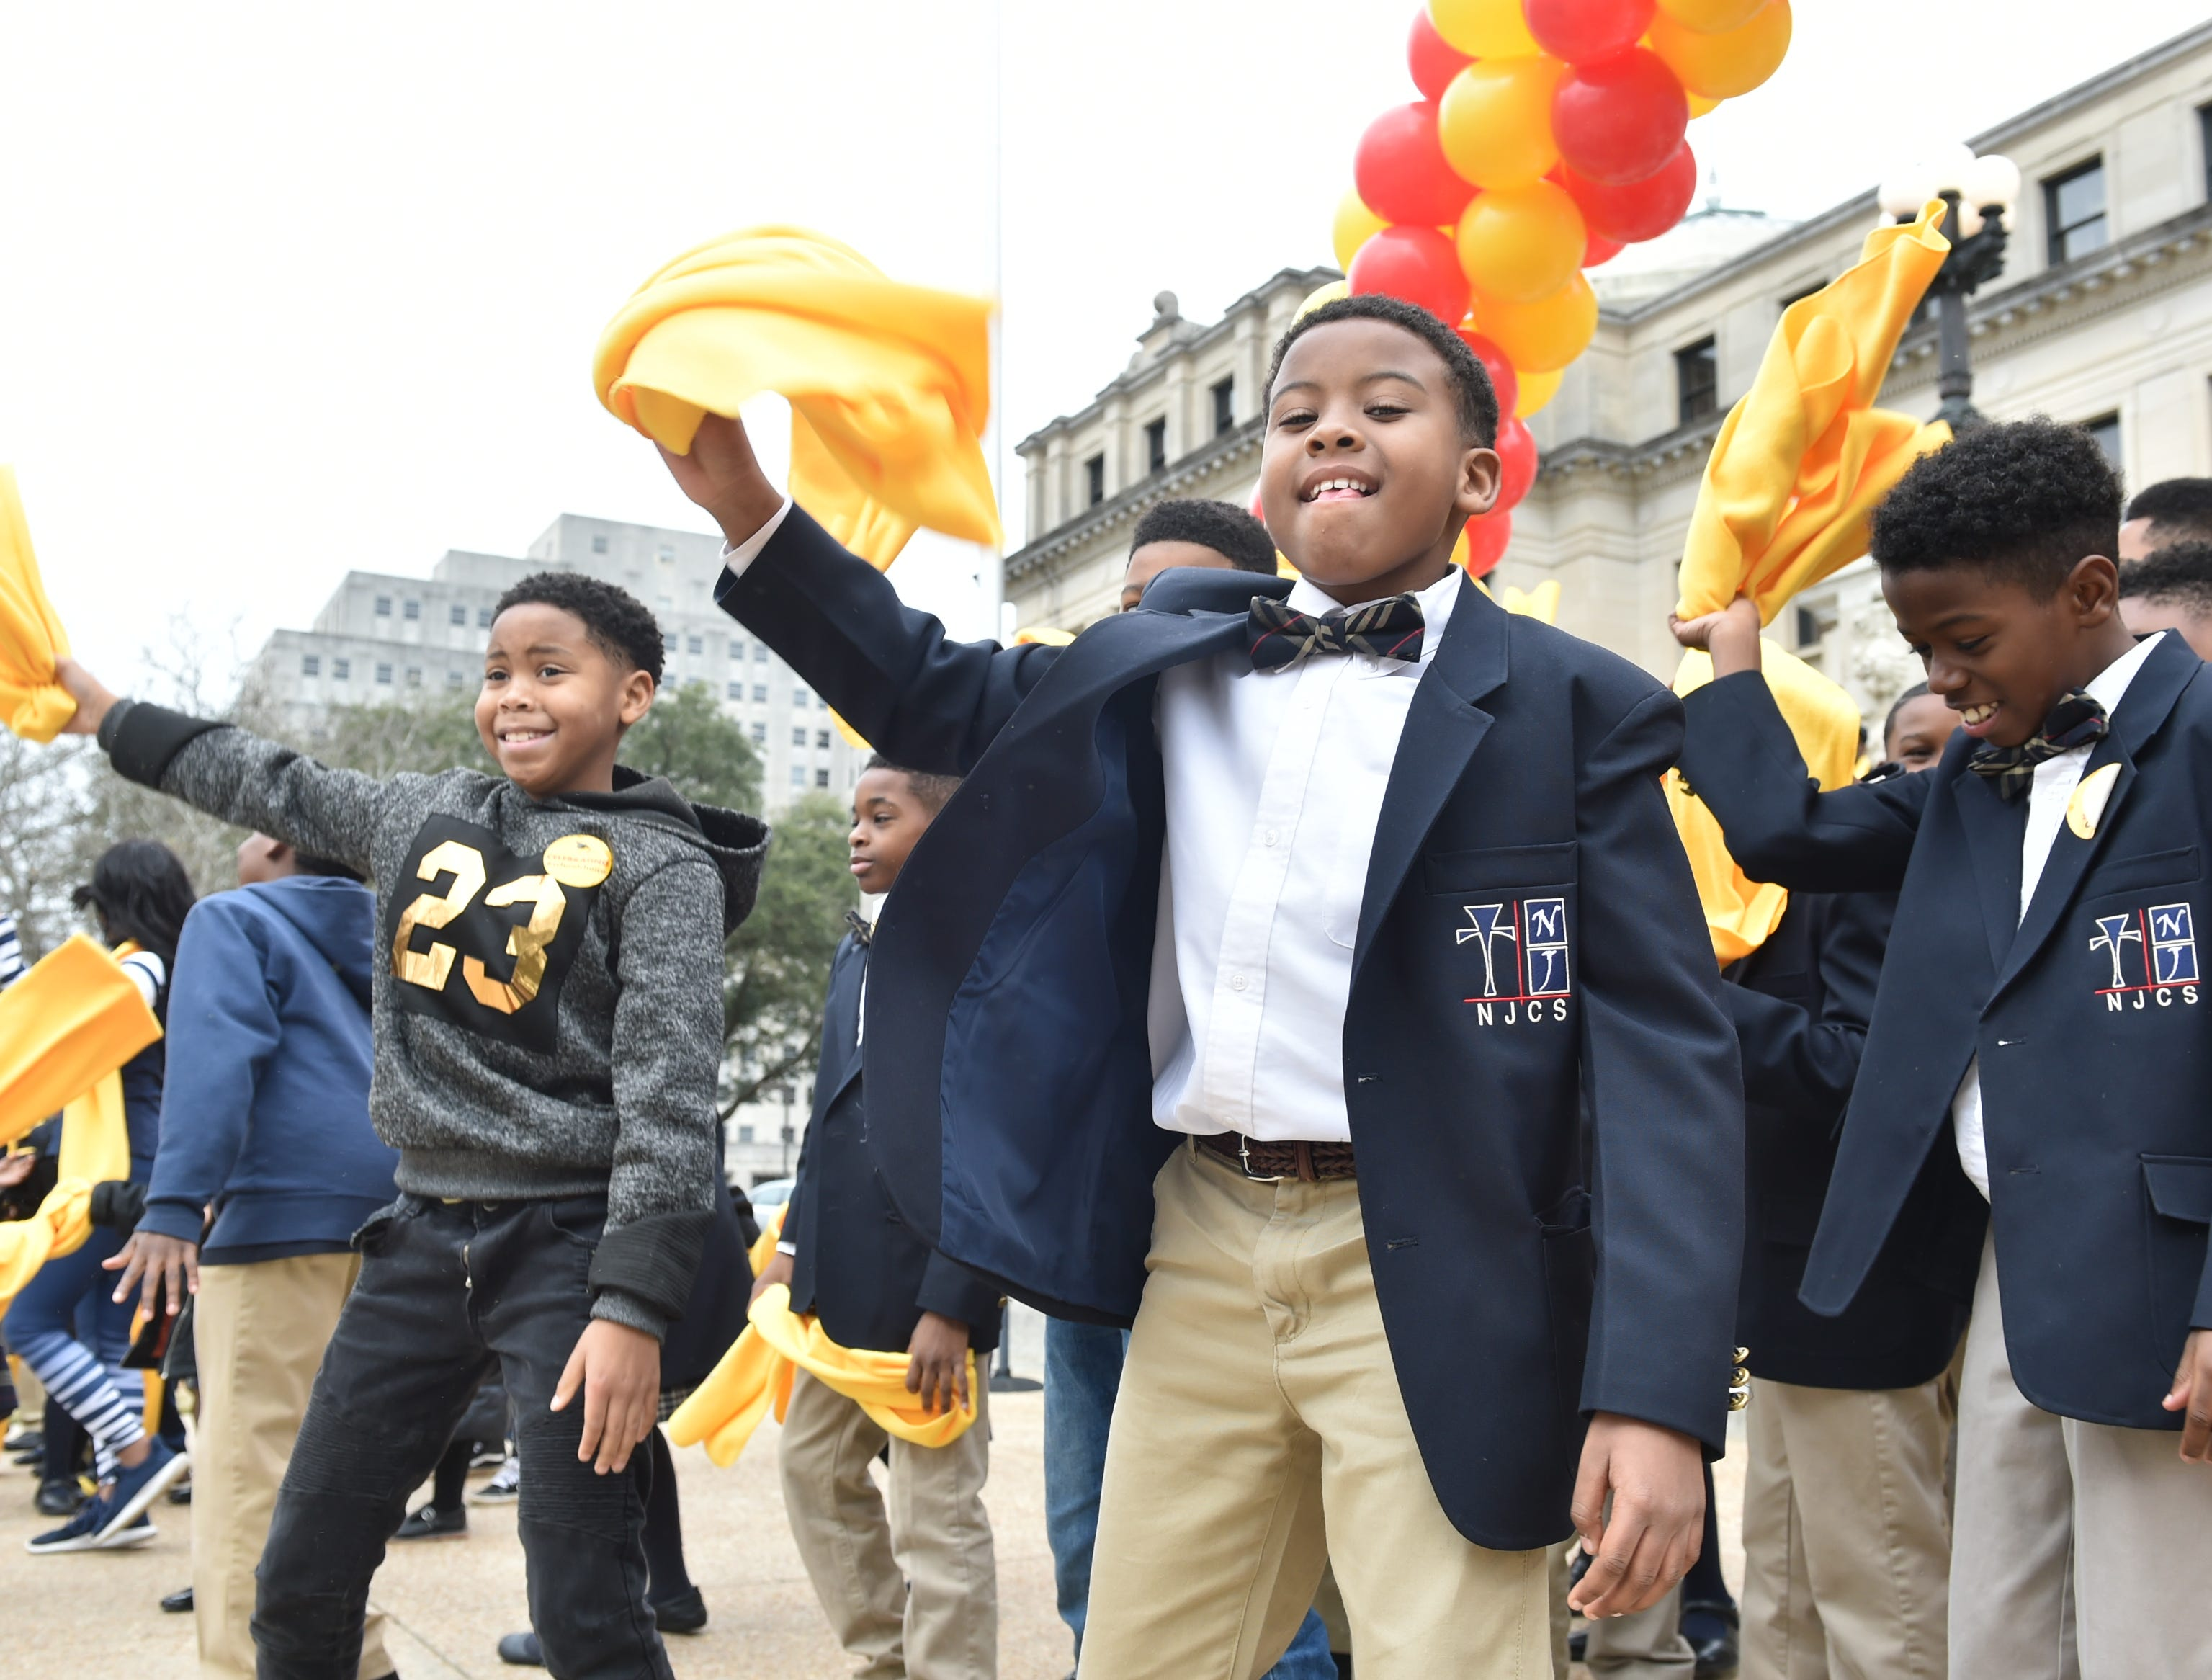 Students dance at a National School Choice Week rally held on the steps of the capitol building in Jackson, MS. Students from across the state attended the rally and met with legislators regarding school choice in Mississippi. Tuesday, Jan. 22, 2019.